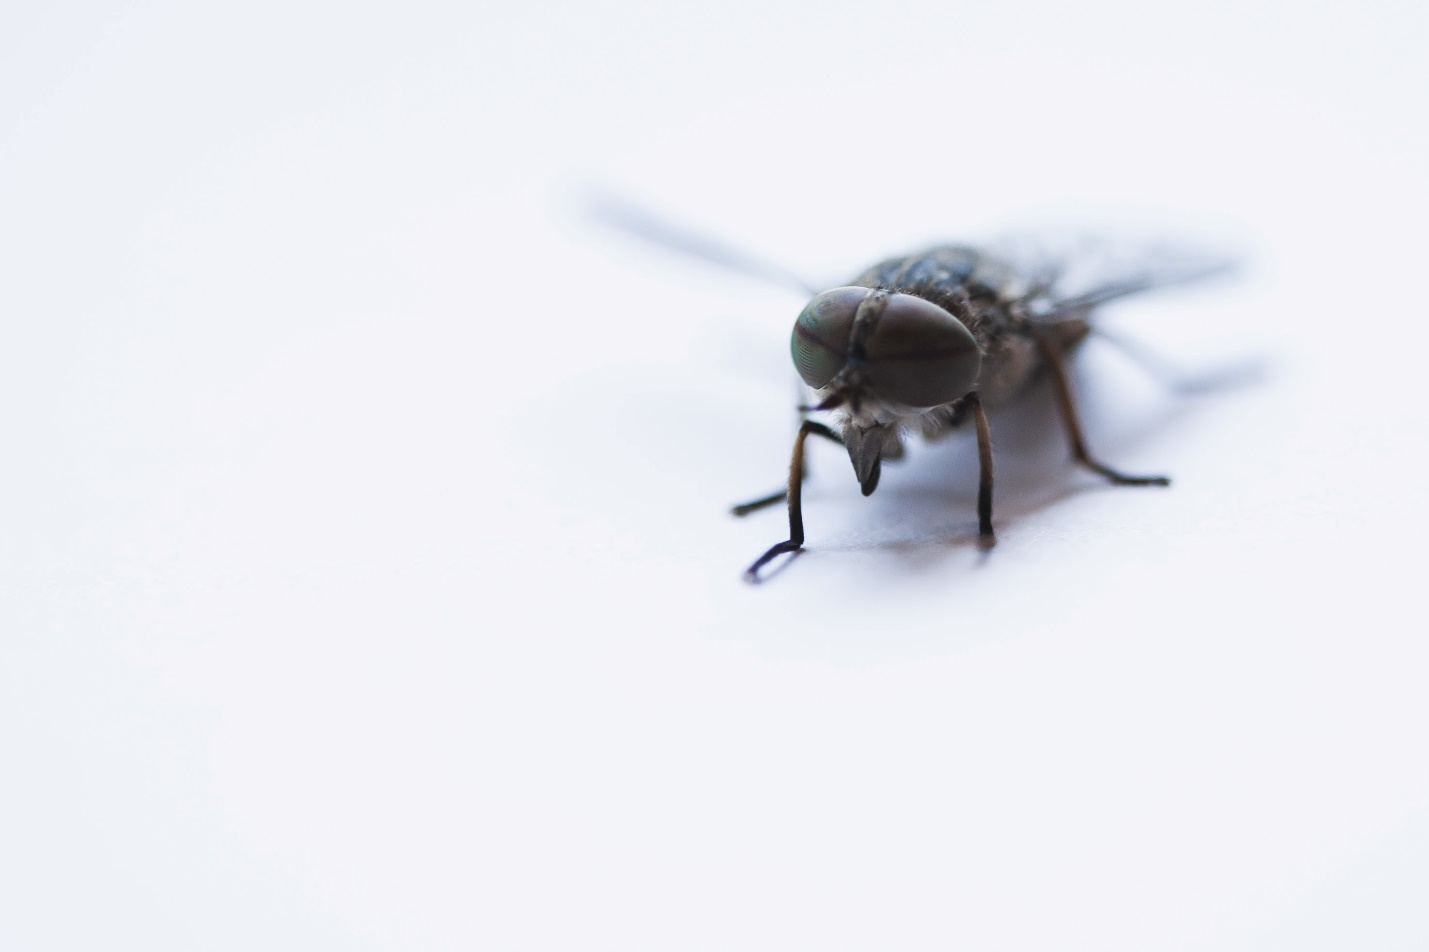 A housefly. A common pest